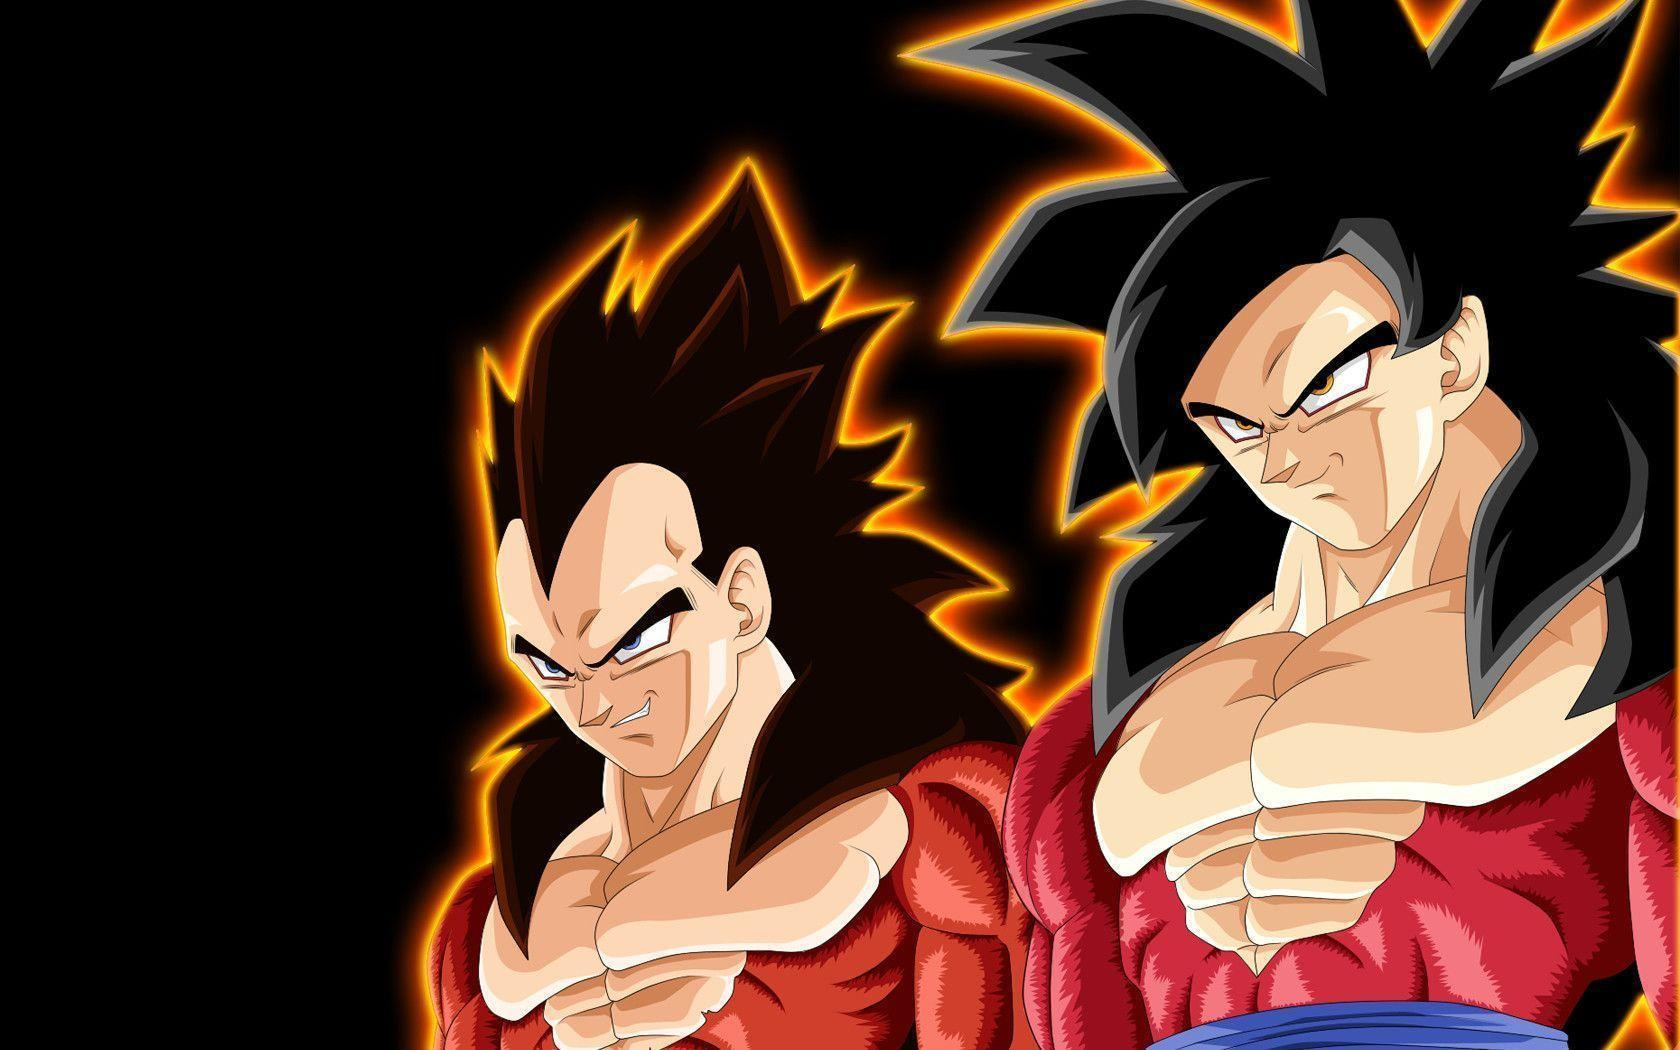 Dragonball Z Super Saiyan 4 - Cartoon Wallpapers (6545) ilikewalls.